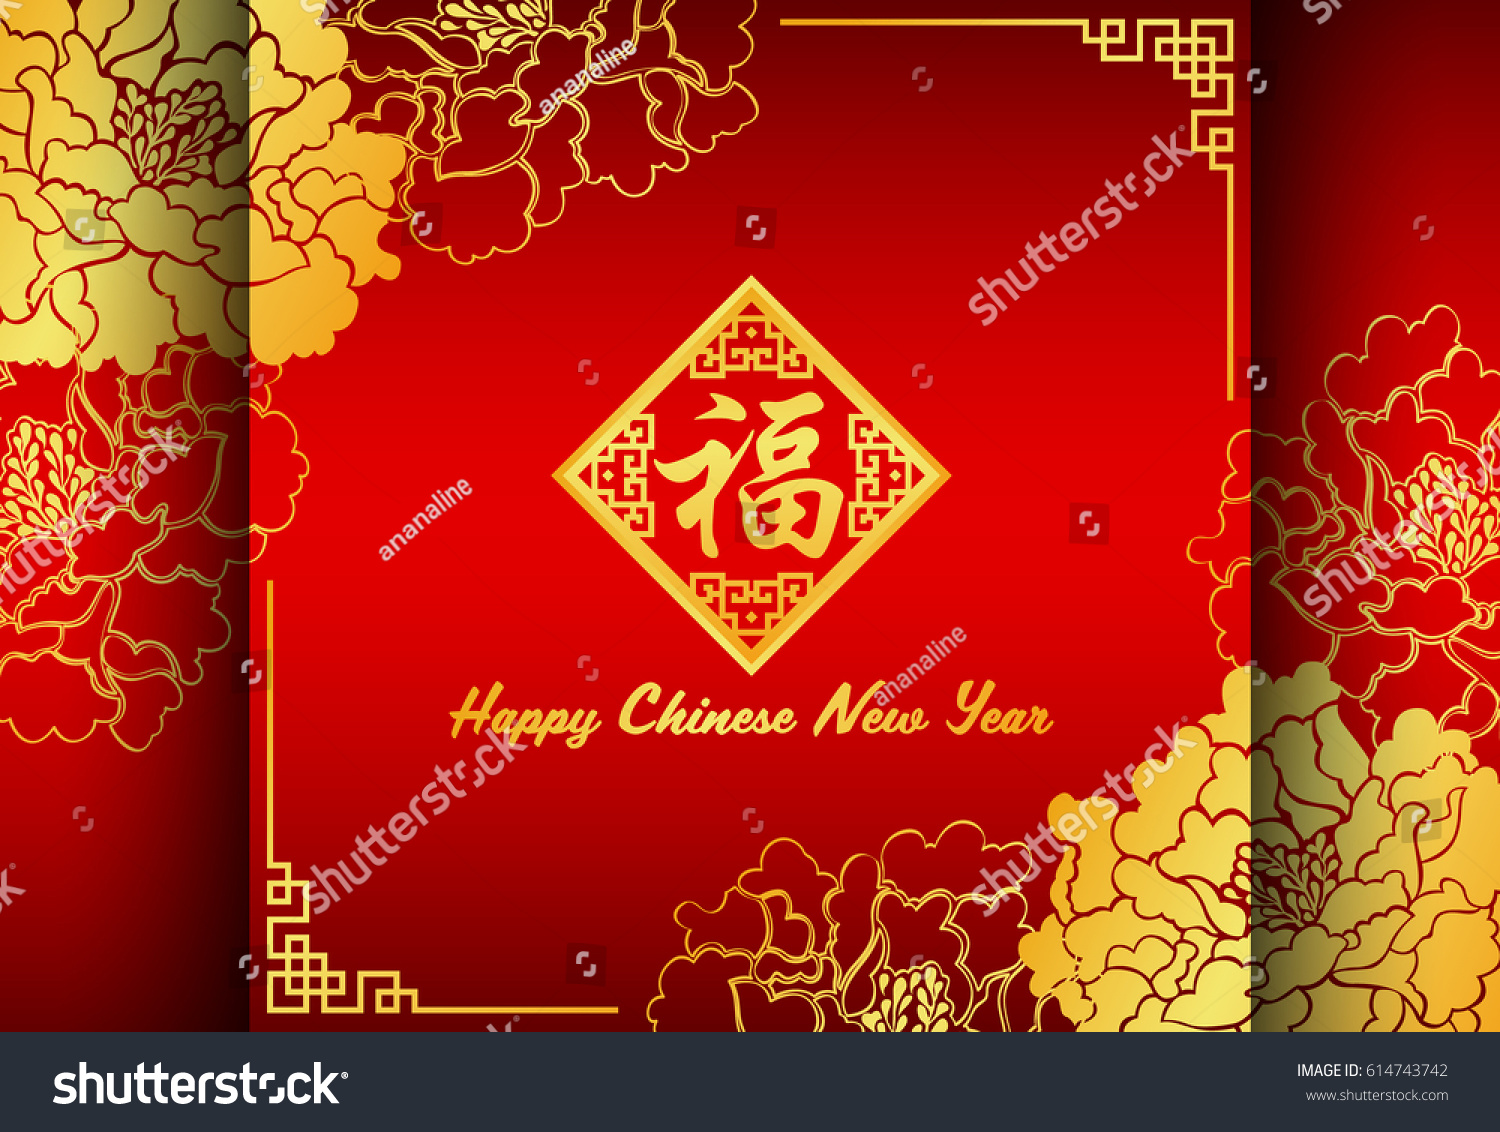 Happy chinese new year card chinese stock vector 614743742 happy chinese new year card chinese word mean good fortune on gold flower peony abstract kristyandbryce Choice Image